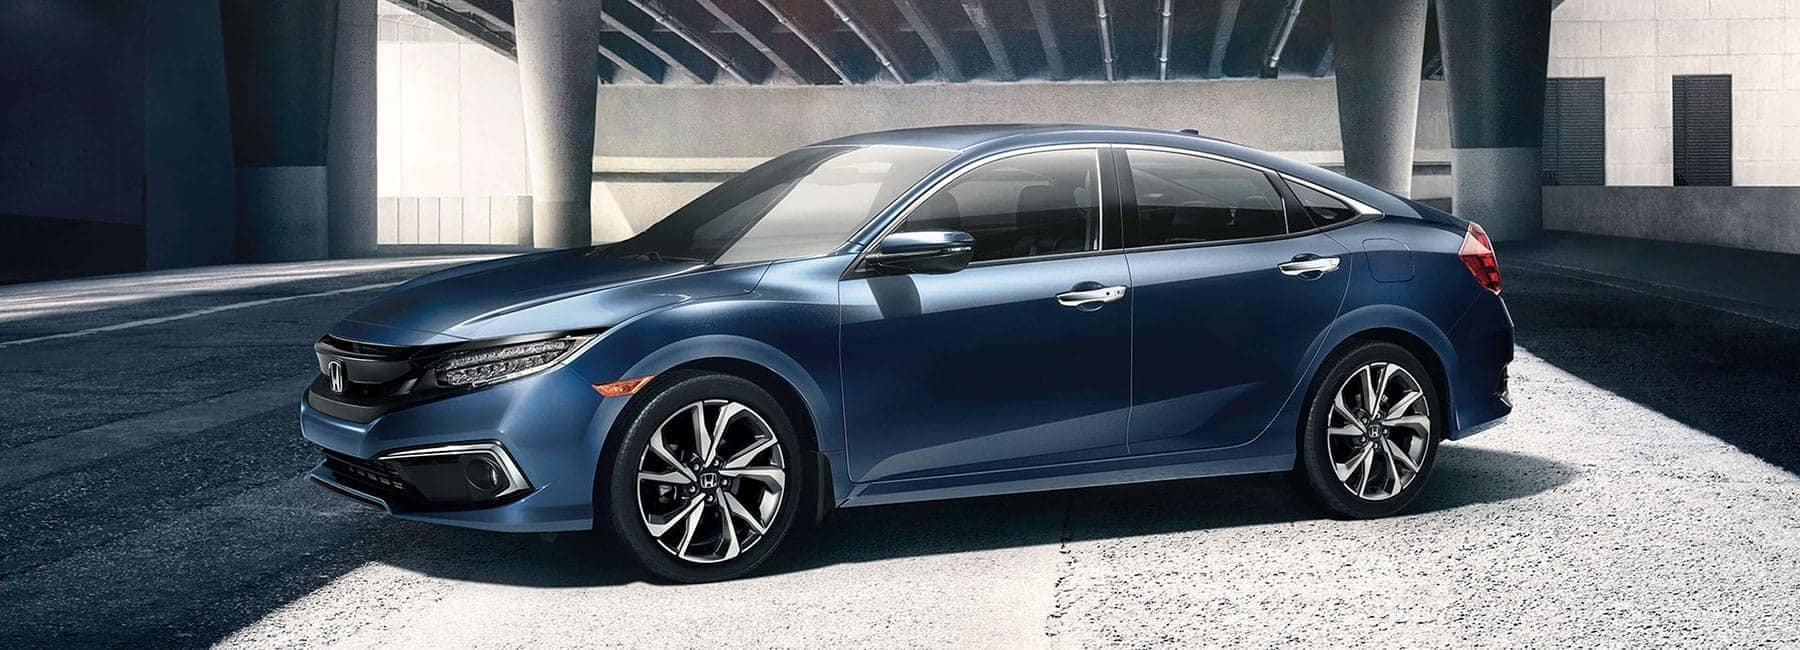 2019-honda-civic-sedan-banner